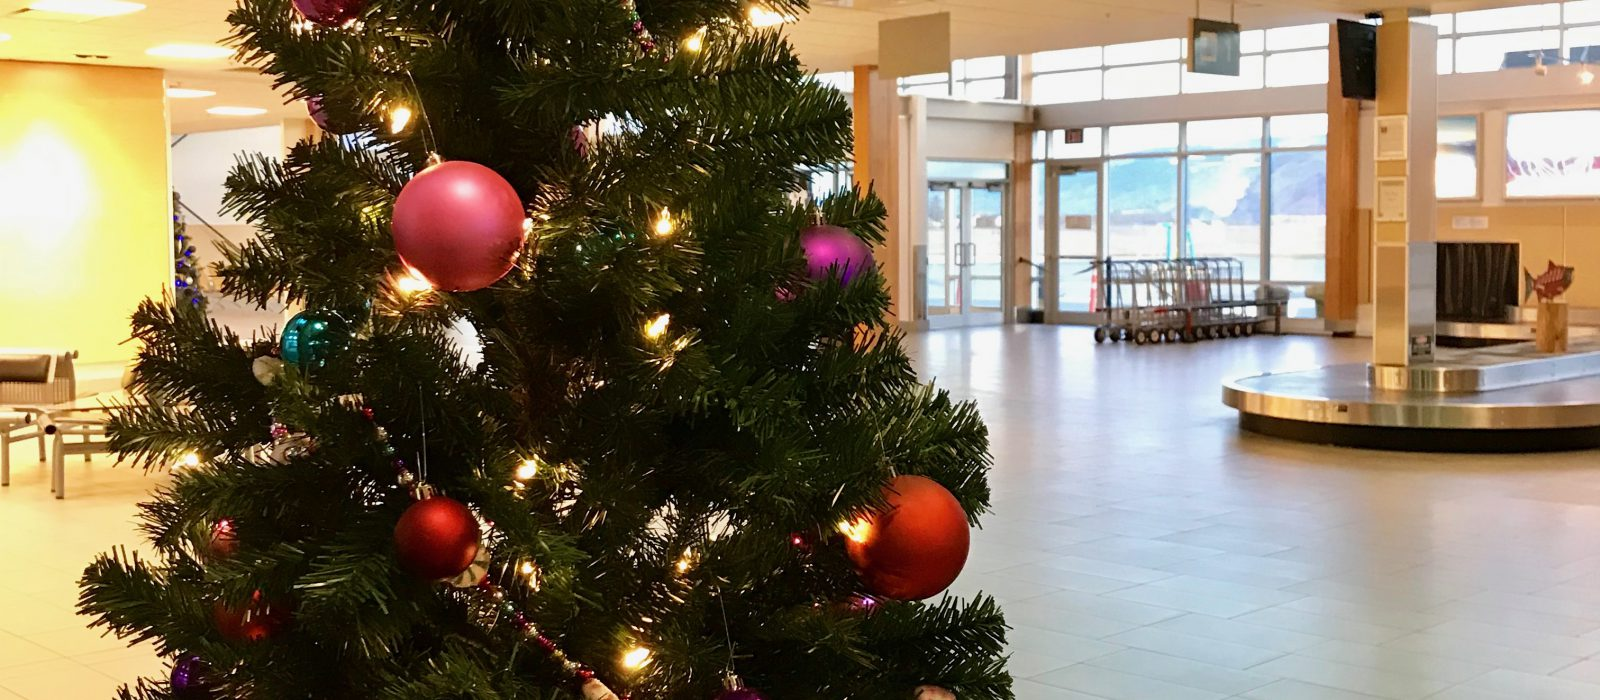 Christmas at the airport